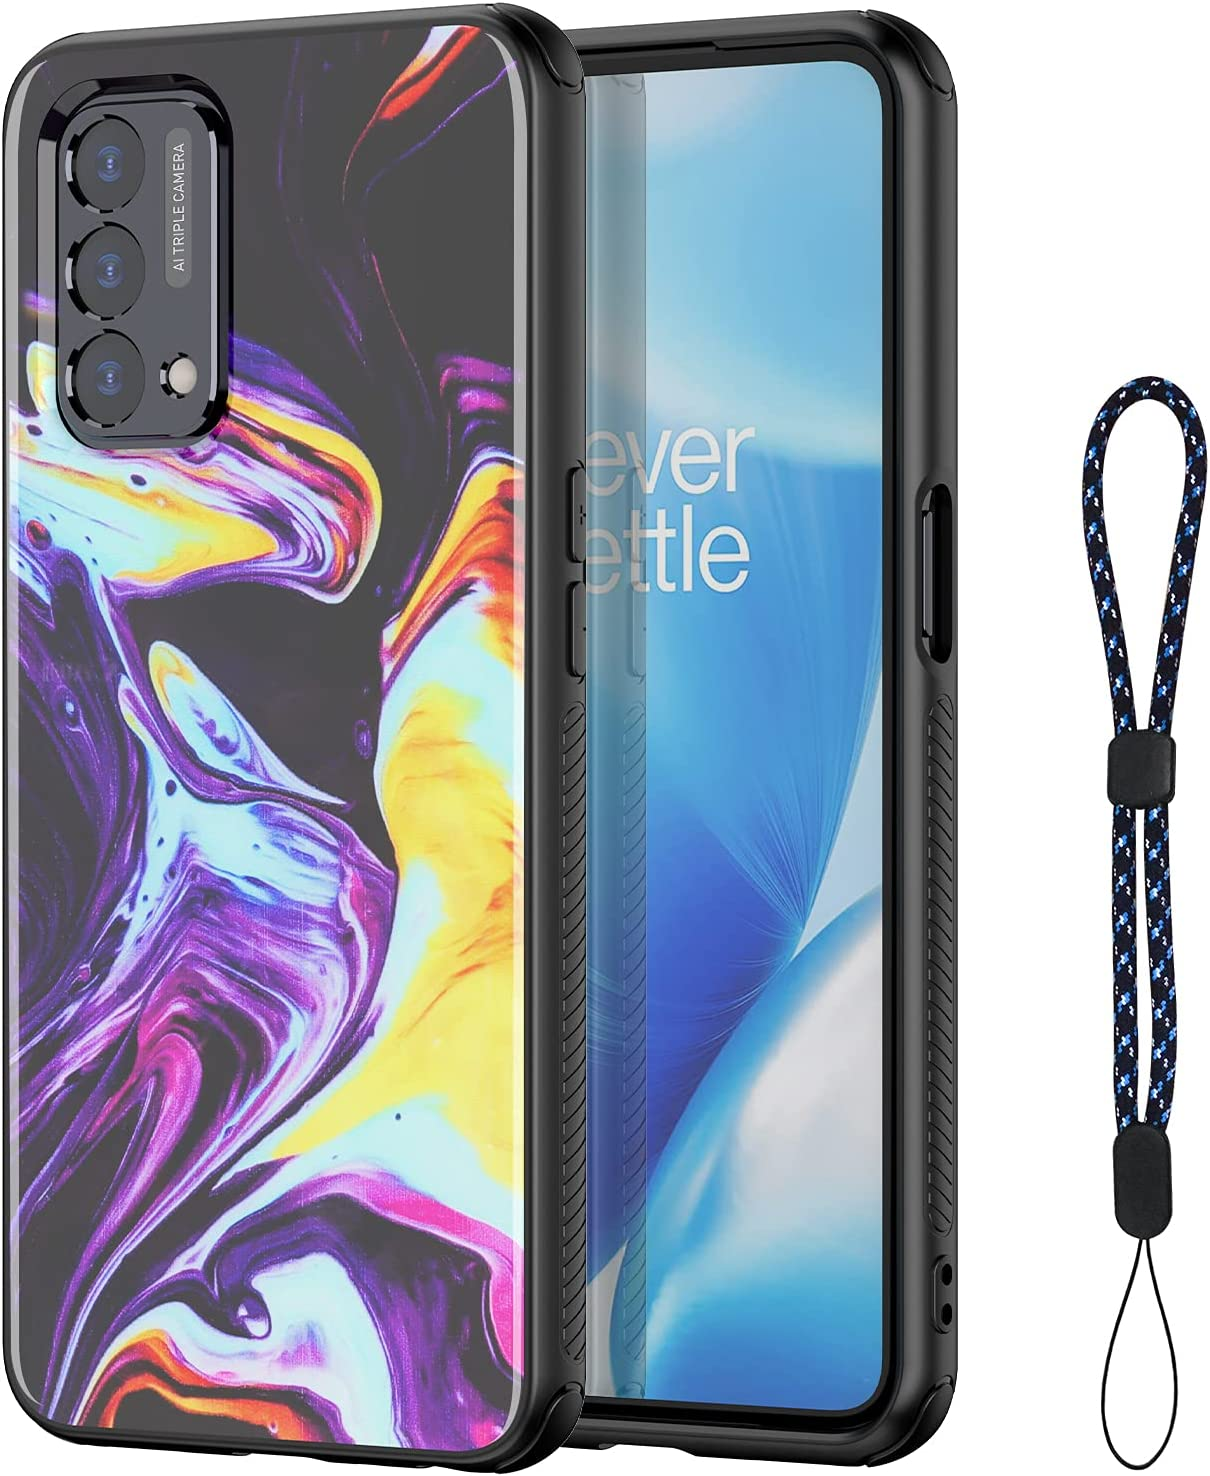 MAKAVO for OnePlus Nord N200 5G Case, Soft Silicone Bumper + Slim Fit Hard Back Shockproof Aesthetic Protective Phone Cover with Wrist Strap for Women Girls (Purple)